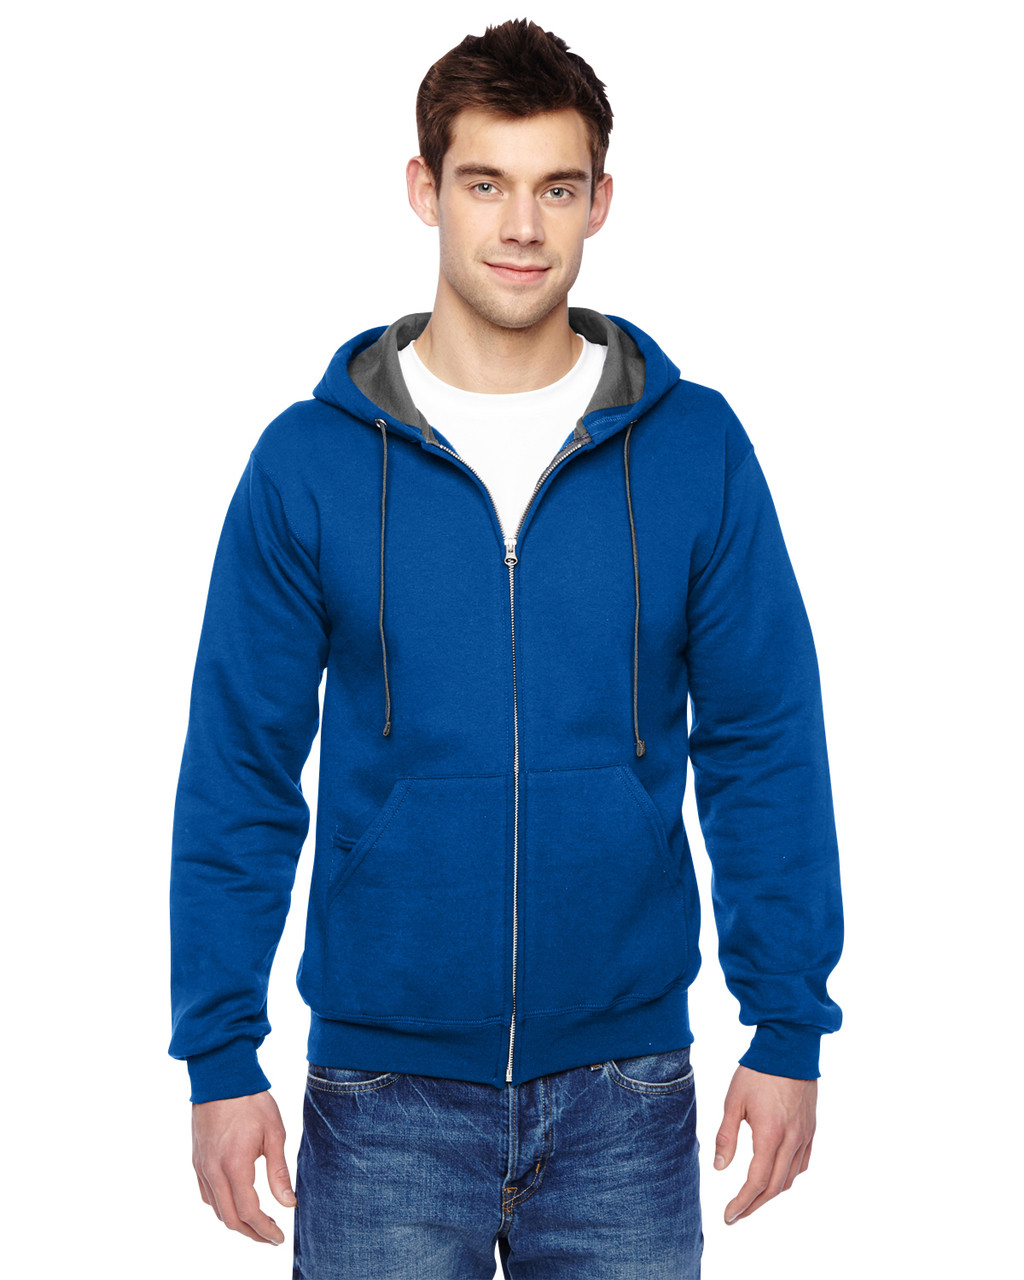 Royal - SF73R Fruit Of The Loom Softspun Full-Zip Hooded Sweatshirt | Blankclothing.ca